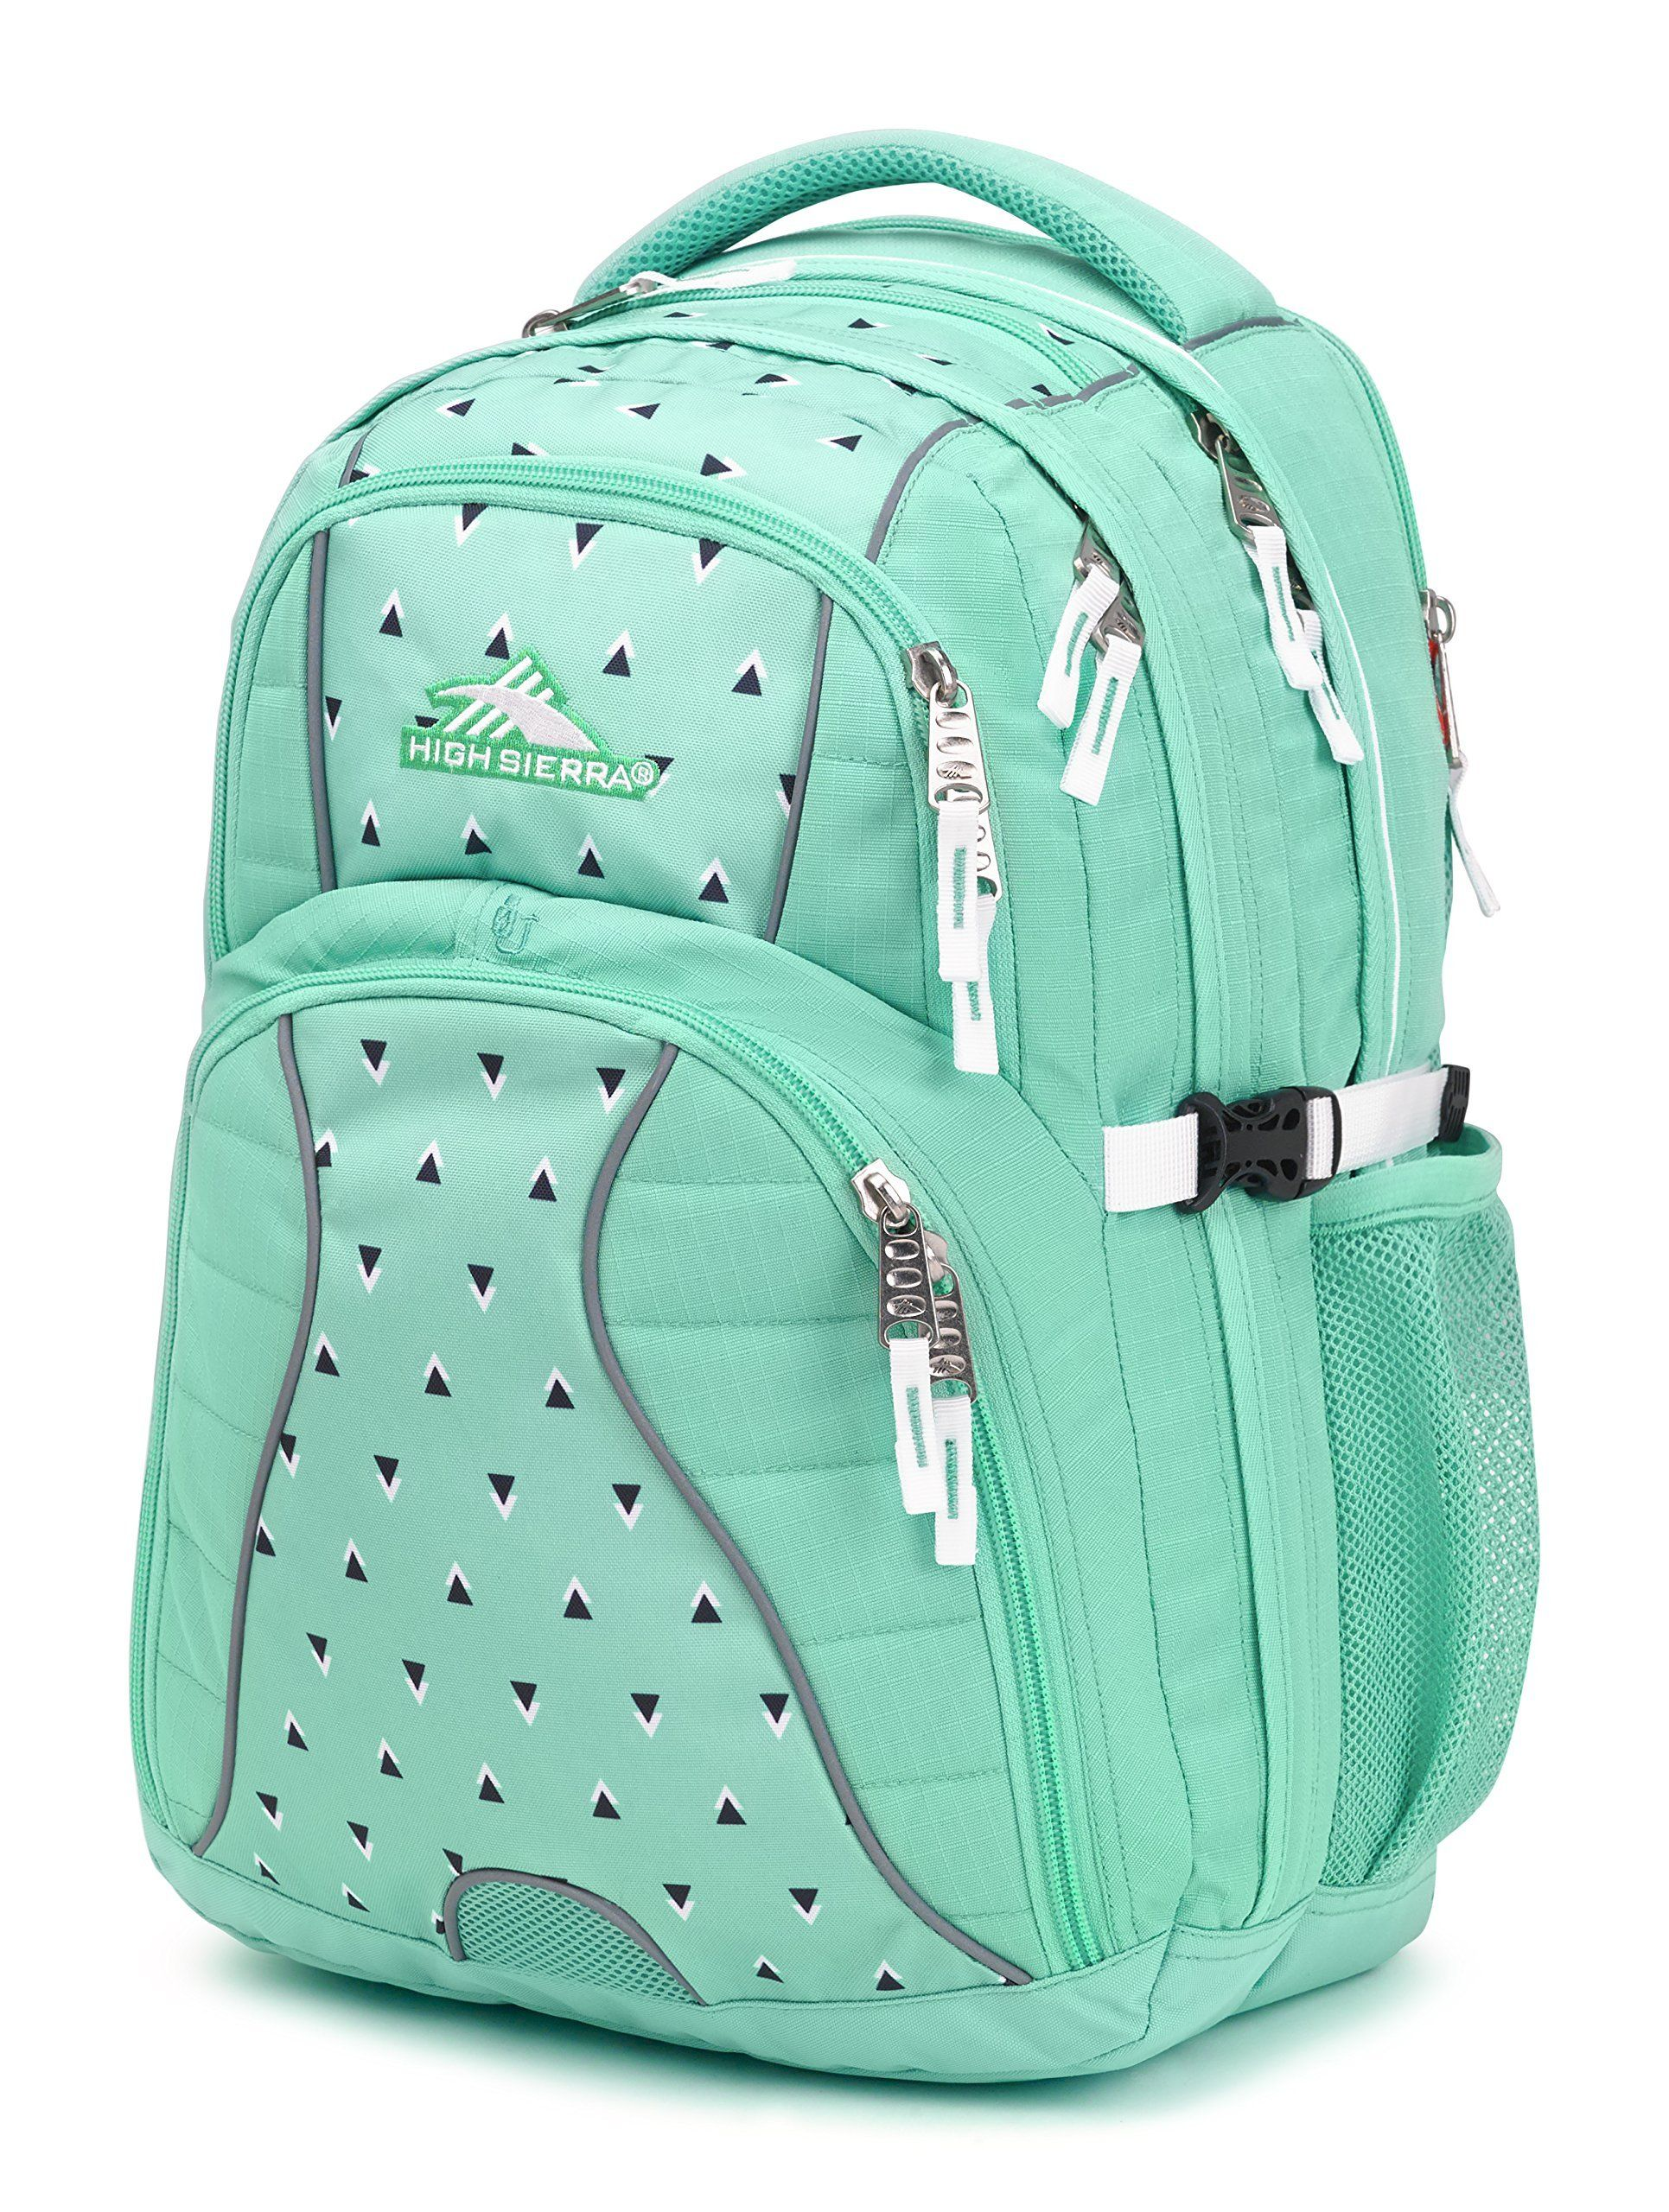 HIGH SIERRA GENUINE backpack Brand New!Very high quality Very Stylish!